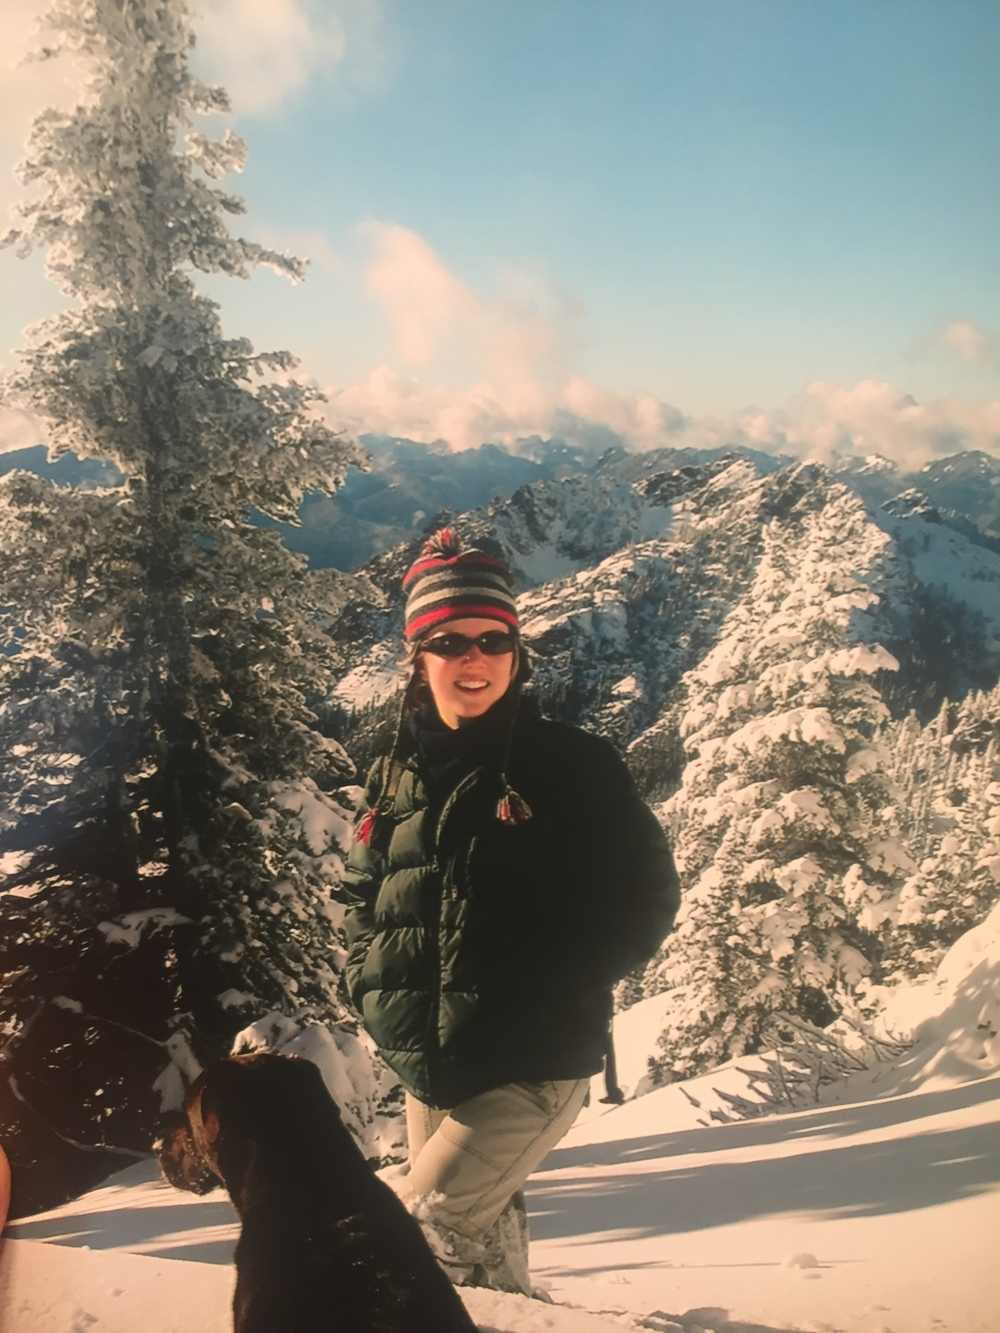 Circa 15 years ago in my frozen cotton cargo pants on Mt. Ellinor, Olympic Mountains, WA.